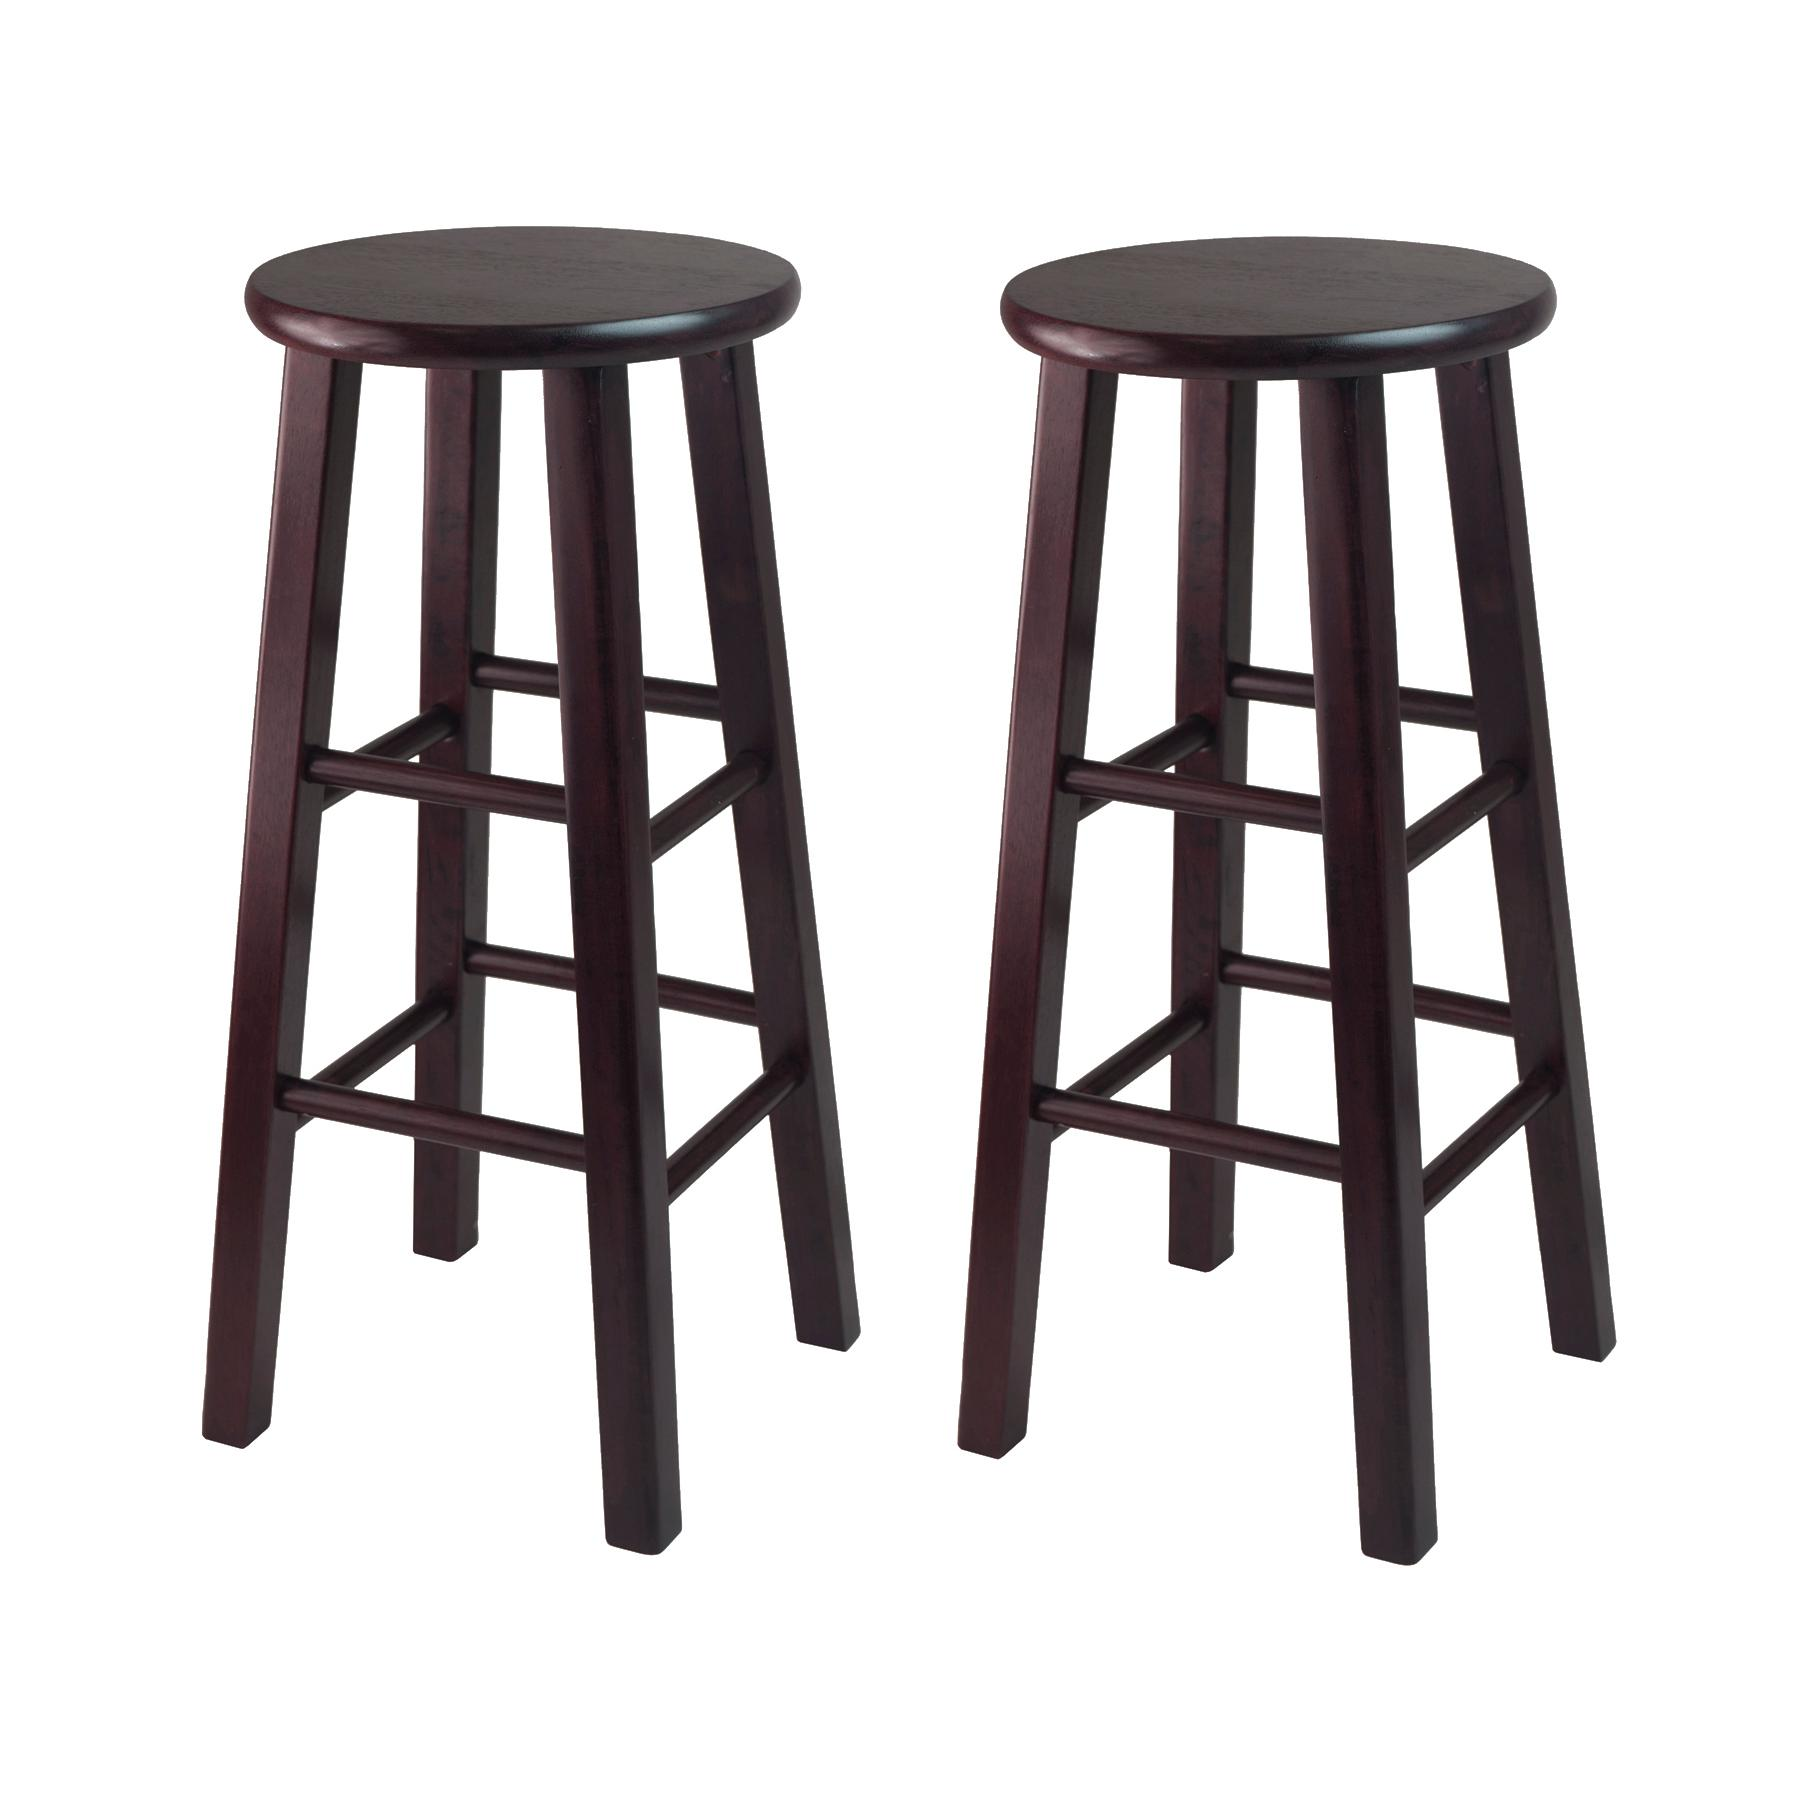 View larger  sc 1 st  Amazon.com & Amazon.com: Winsome Bar Stool with Square Legs 29-Inch Espresso ... islam-shia.org